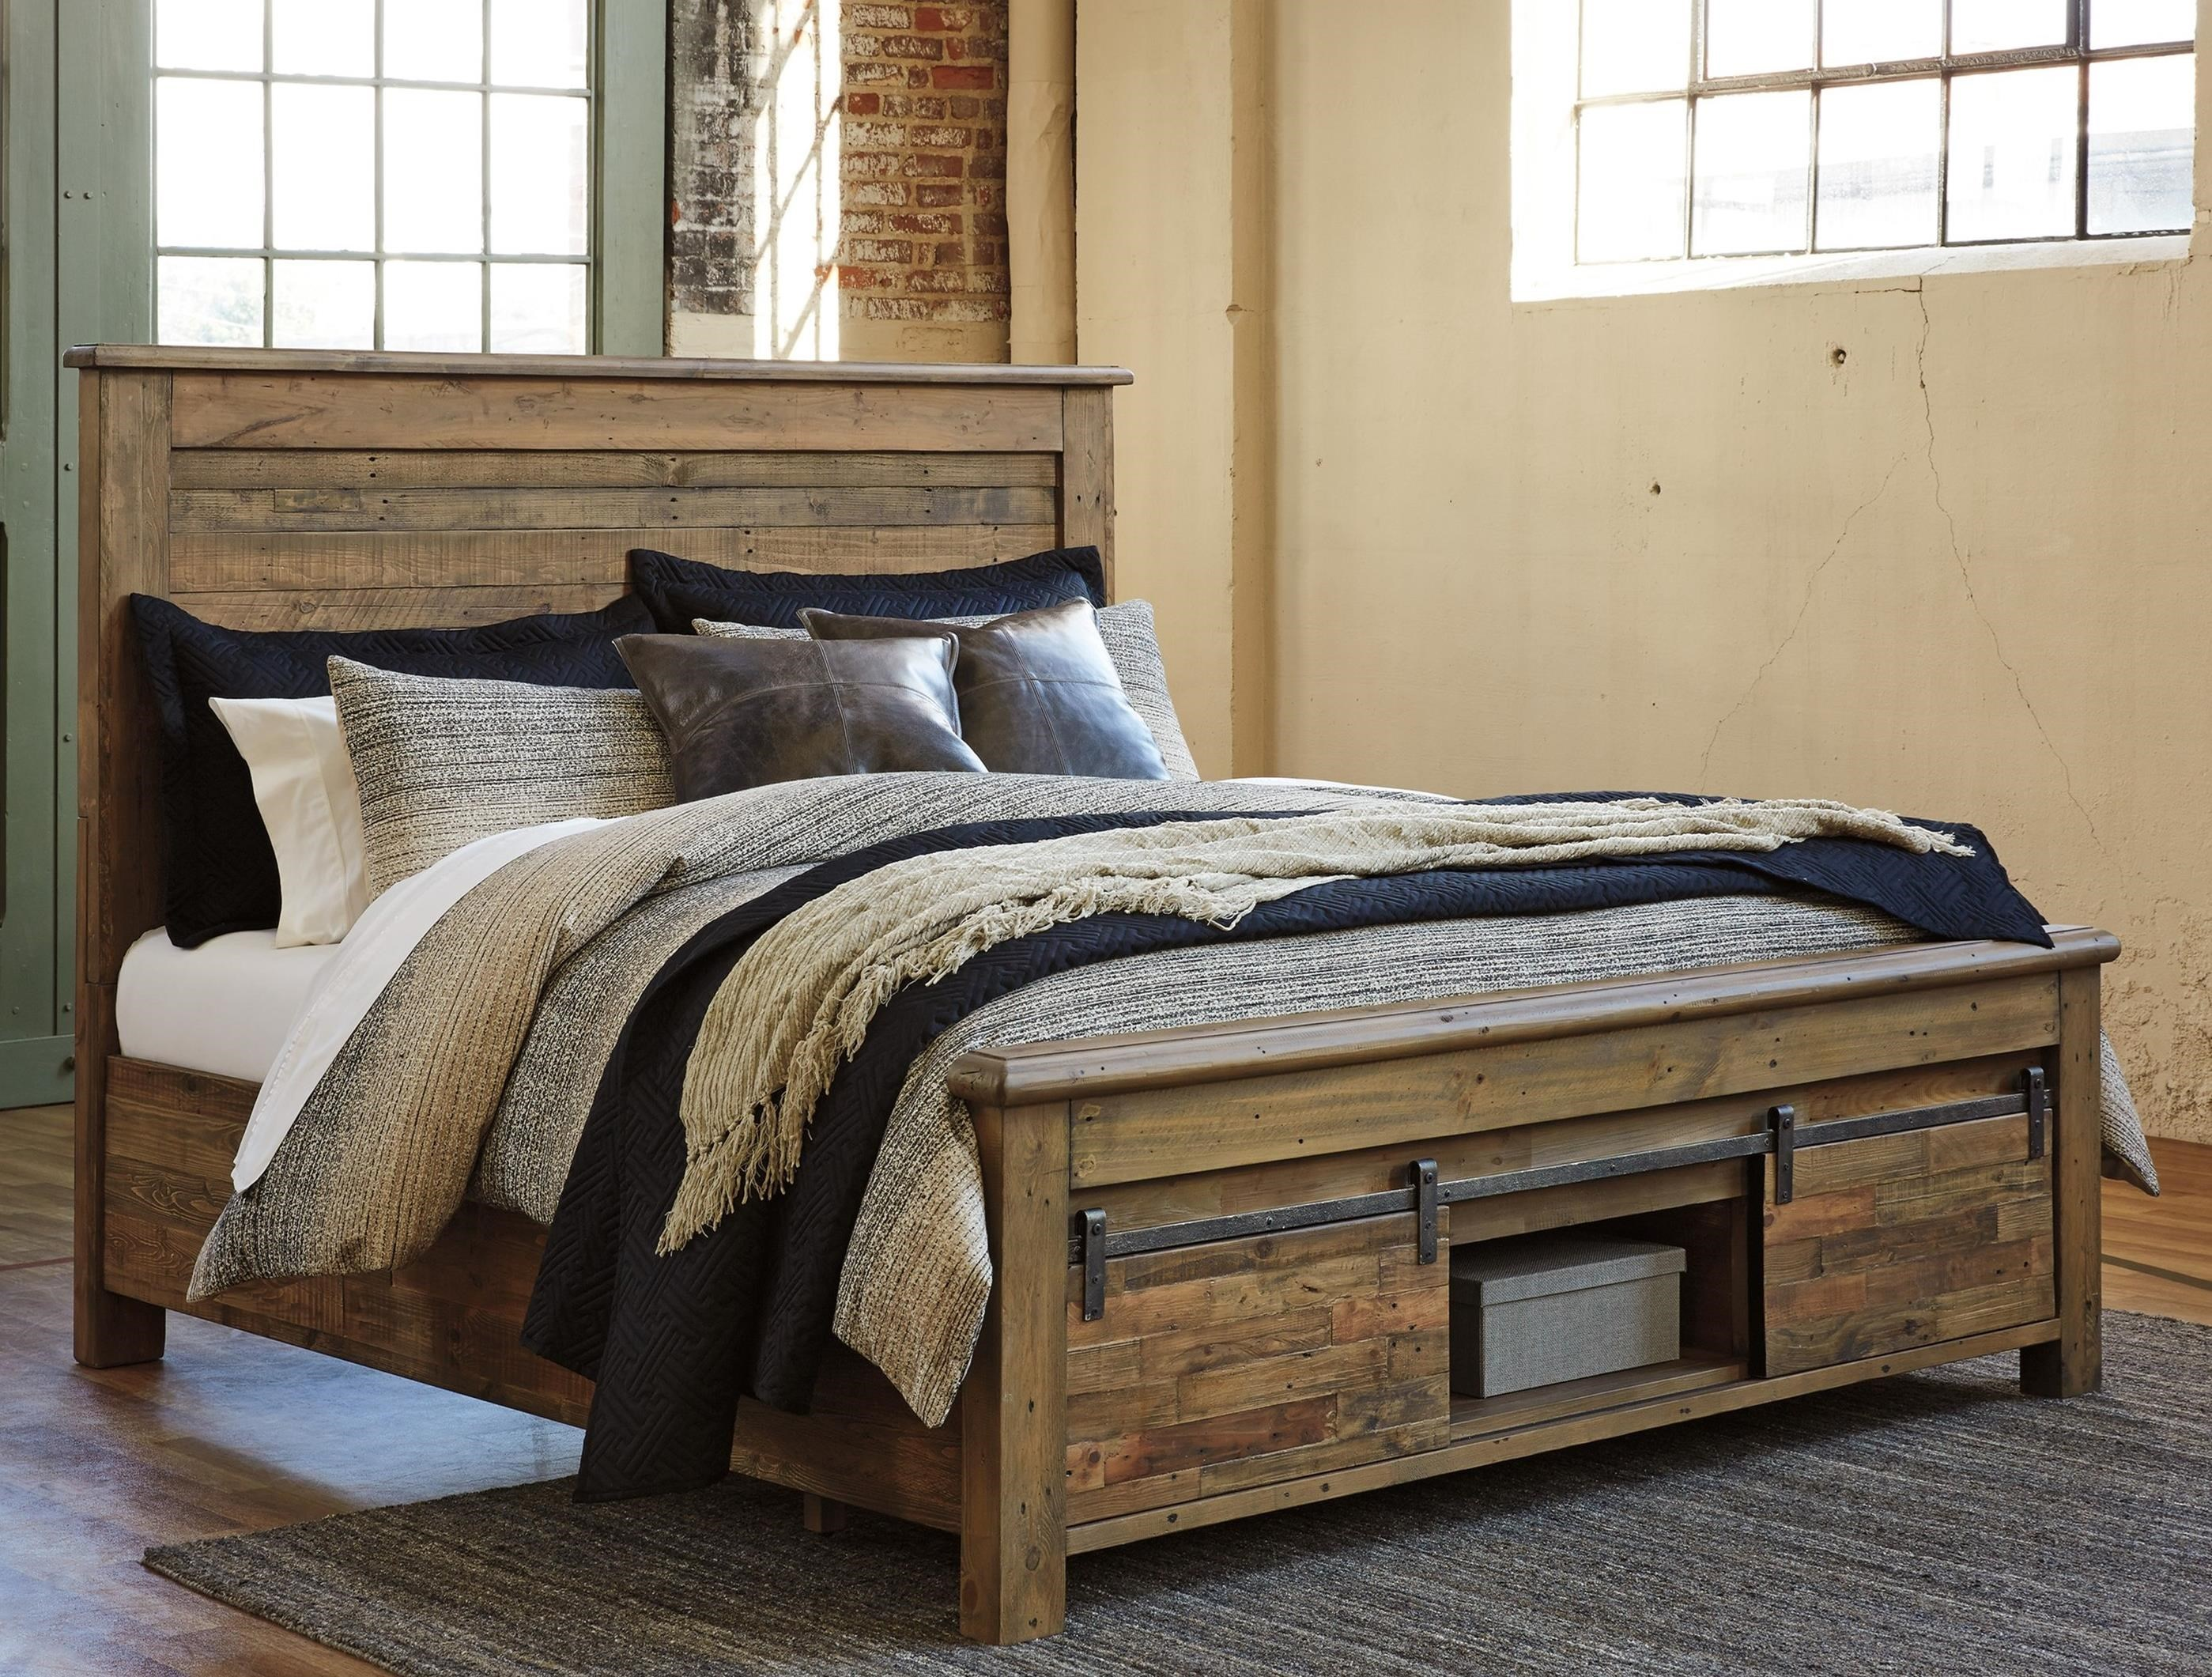 Signature Design By Ashley Sommerford California King Panel Storage Bed With Barn Doors Royal Furniture Platform Beds Low Profile Beds